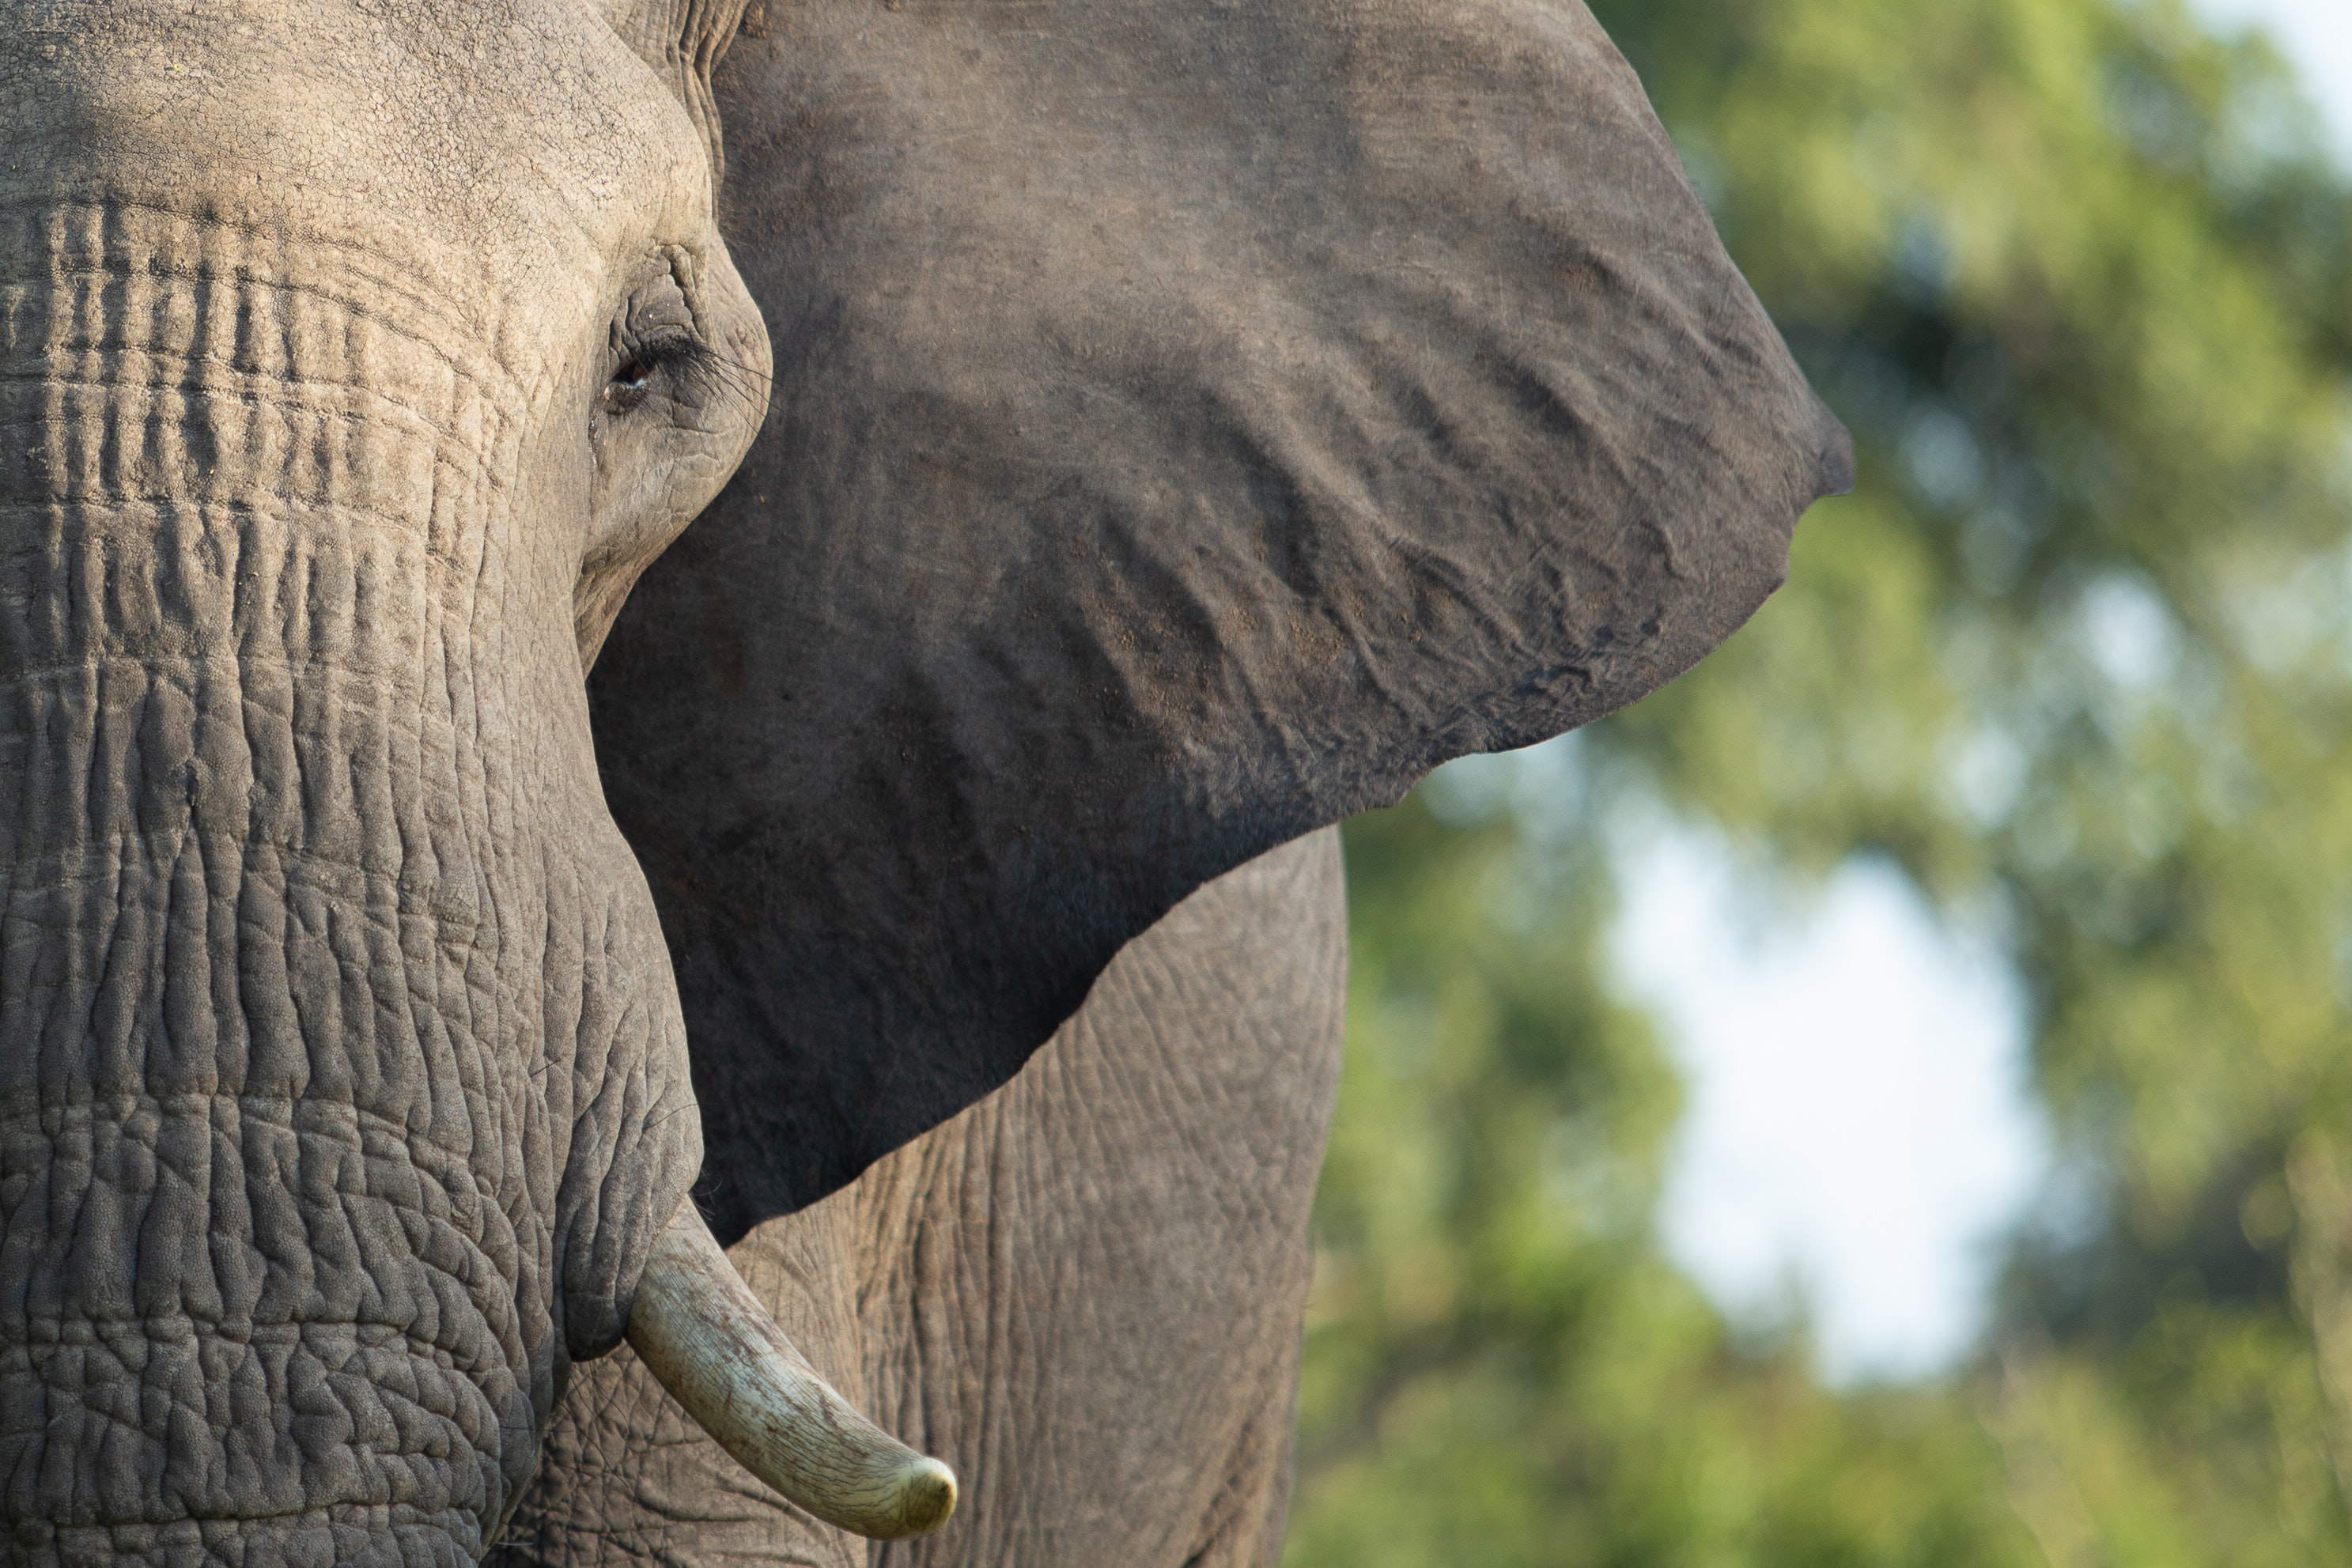 portrait of gray elephant